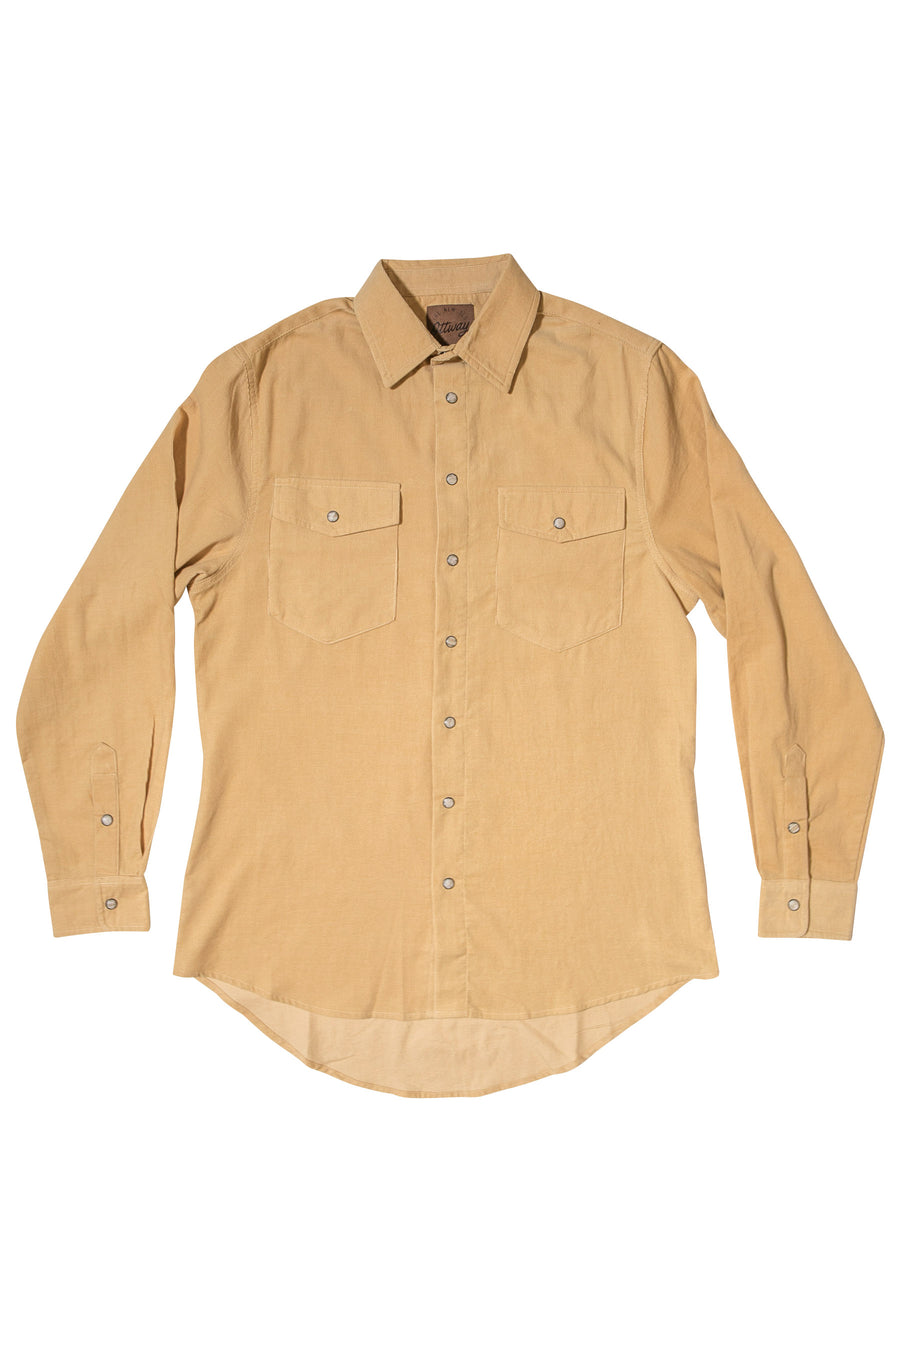 R&G Mustard - Corduroy Long Sleeve Shirt